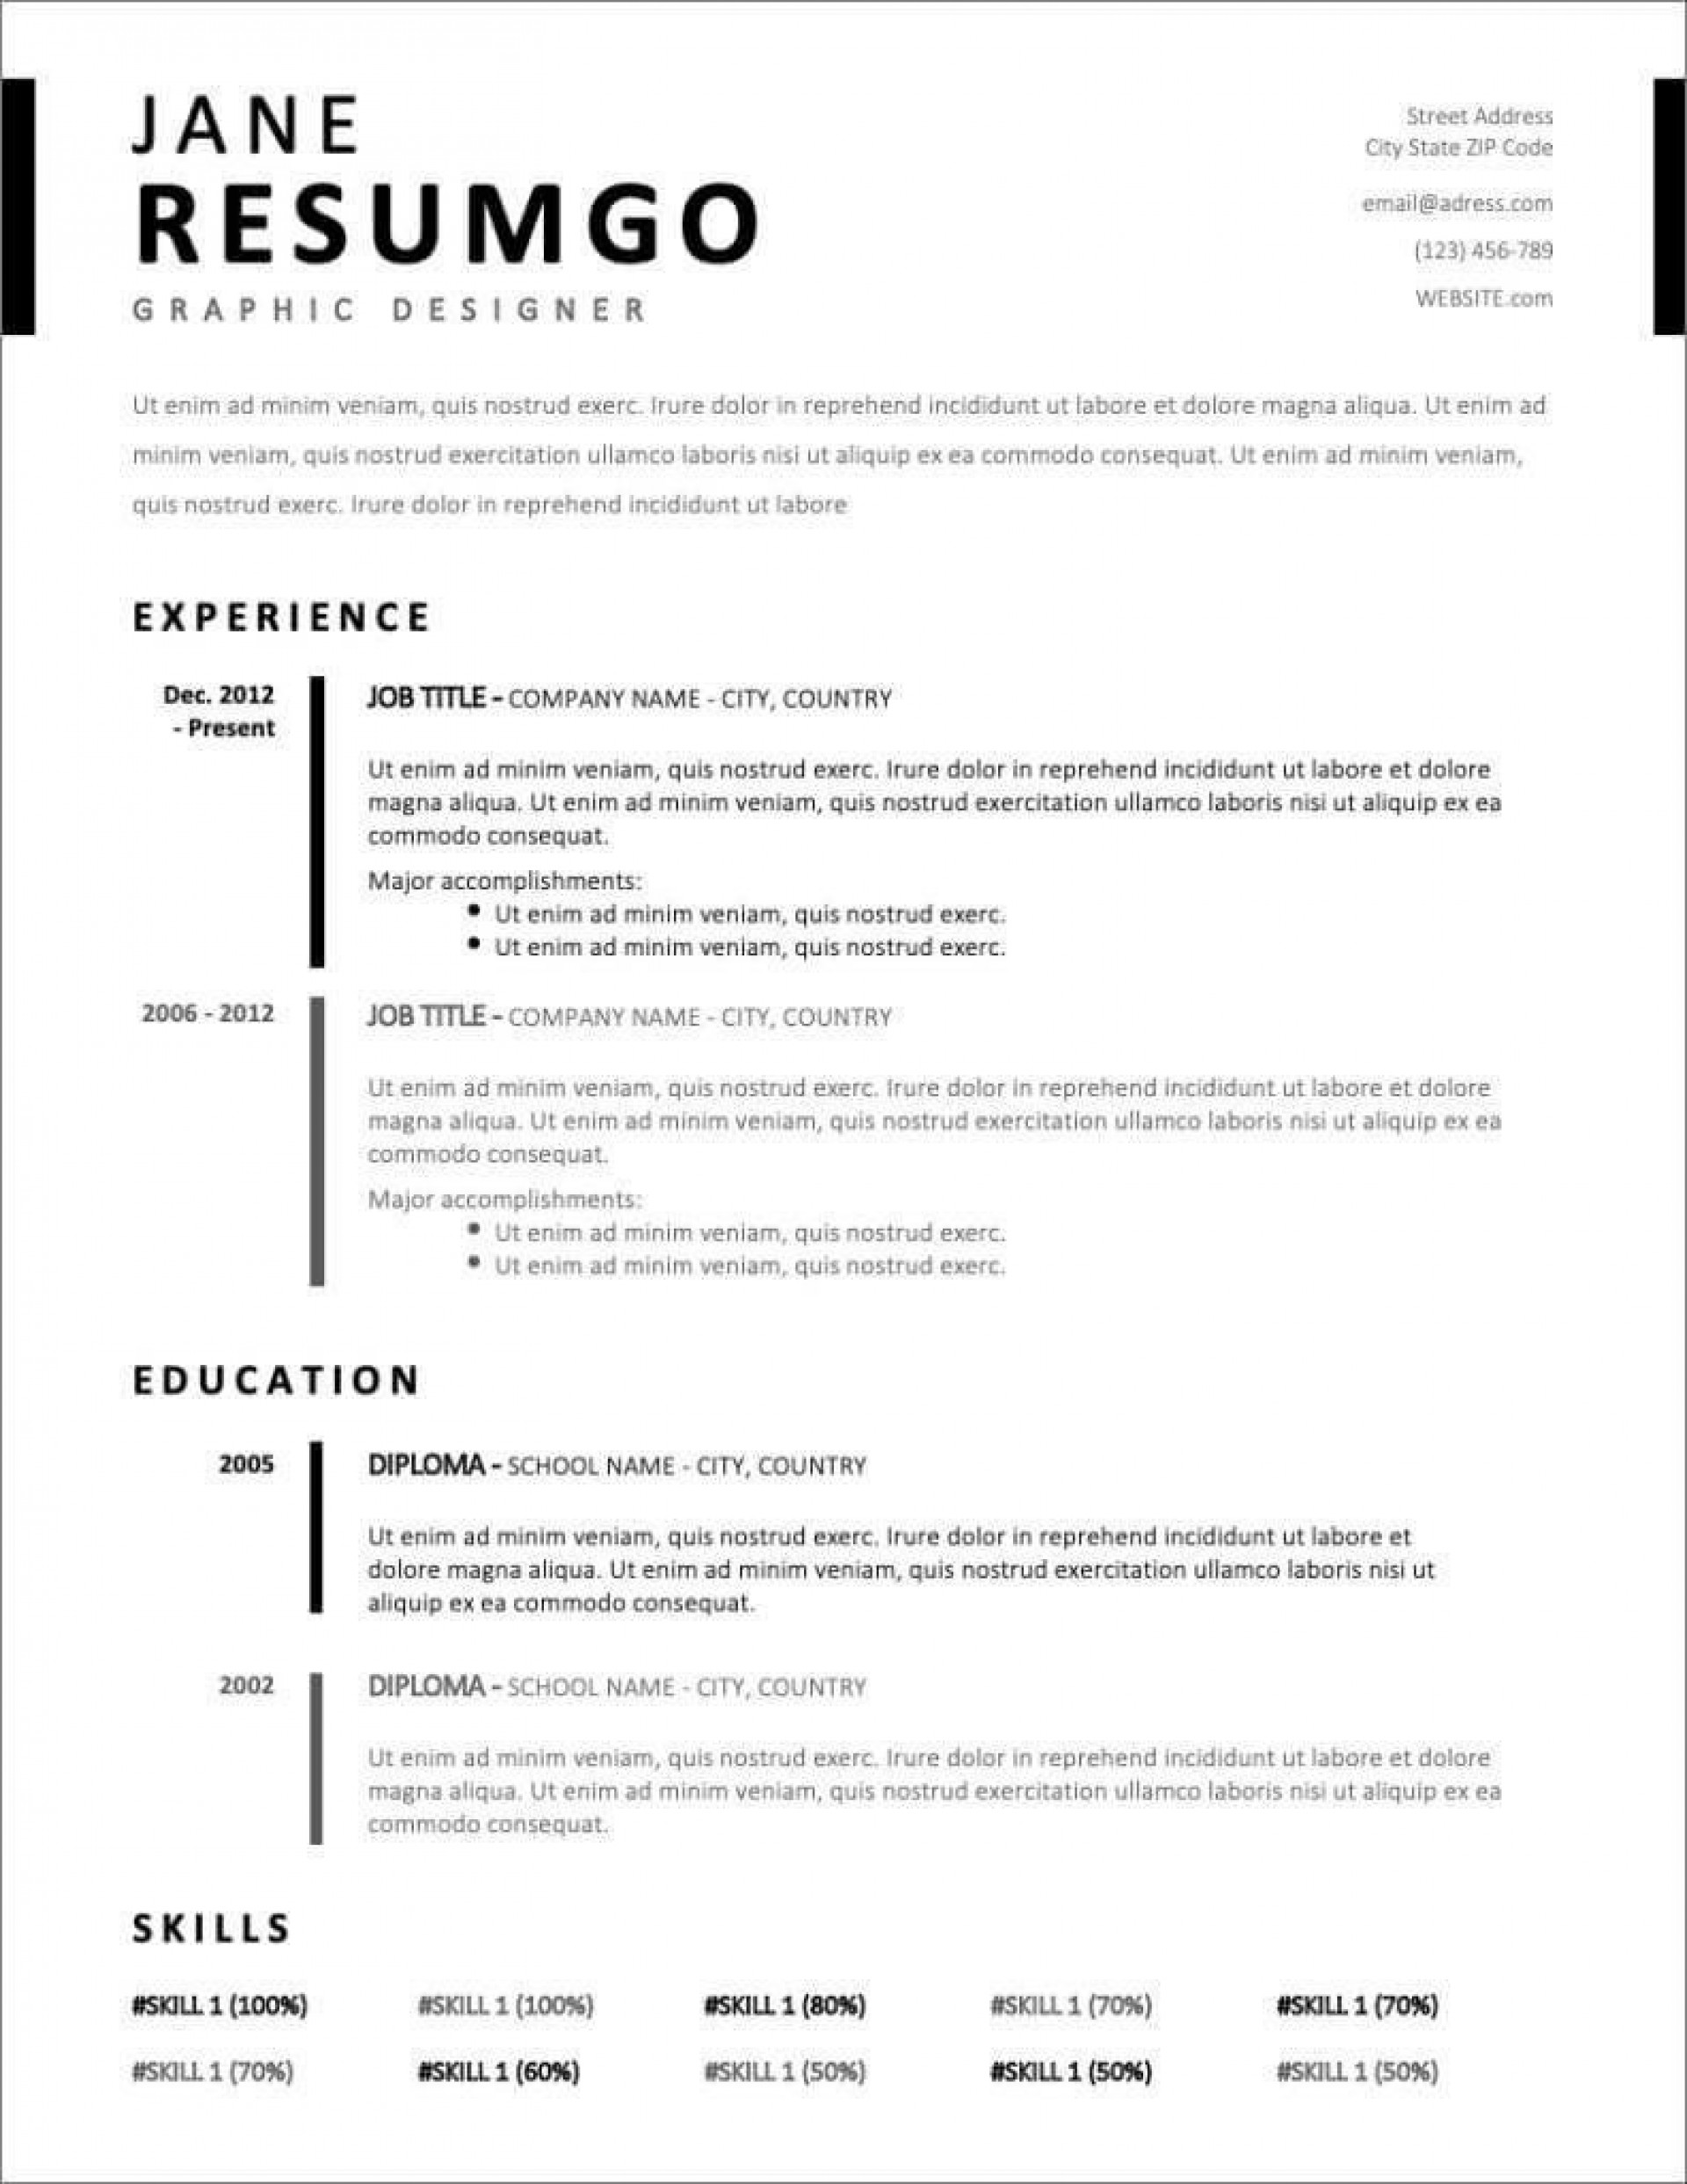 003 Astounding Free Resume Download Template High Def  2020 Word Document Microsoft 20101920